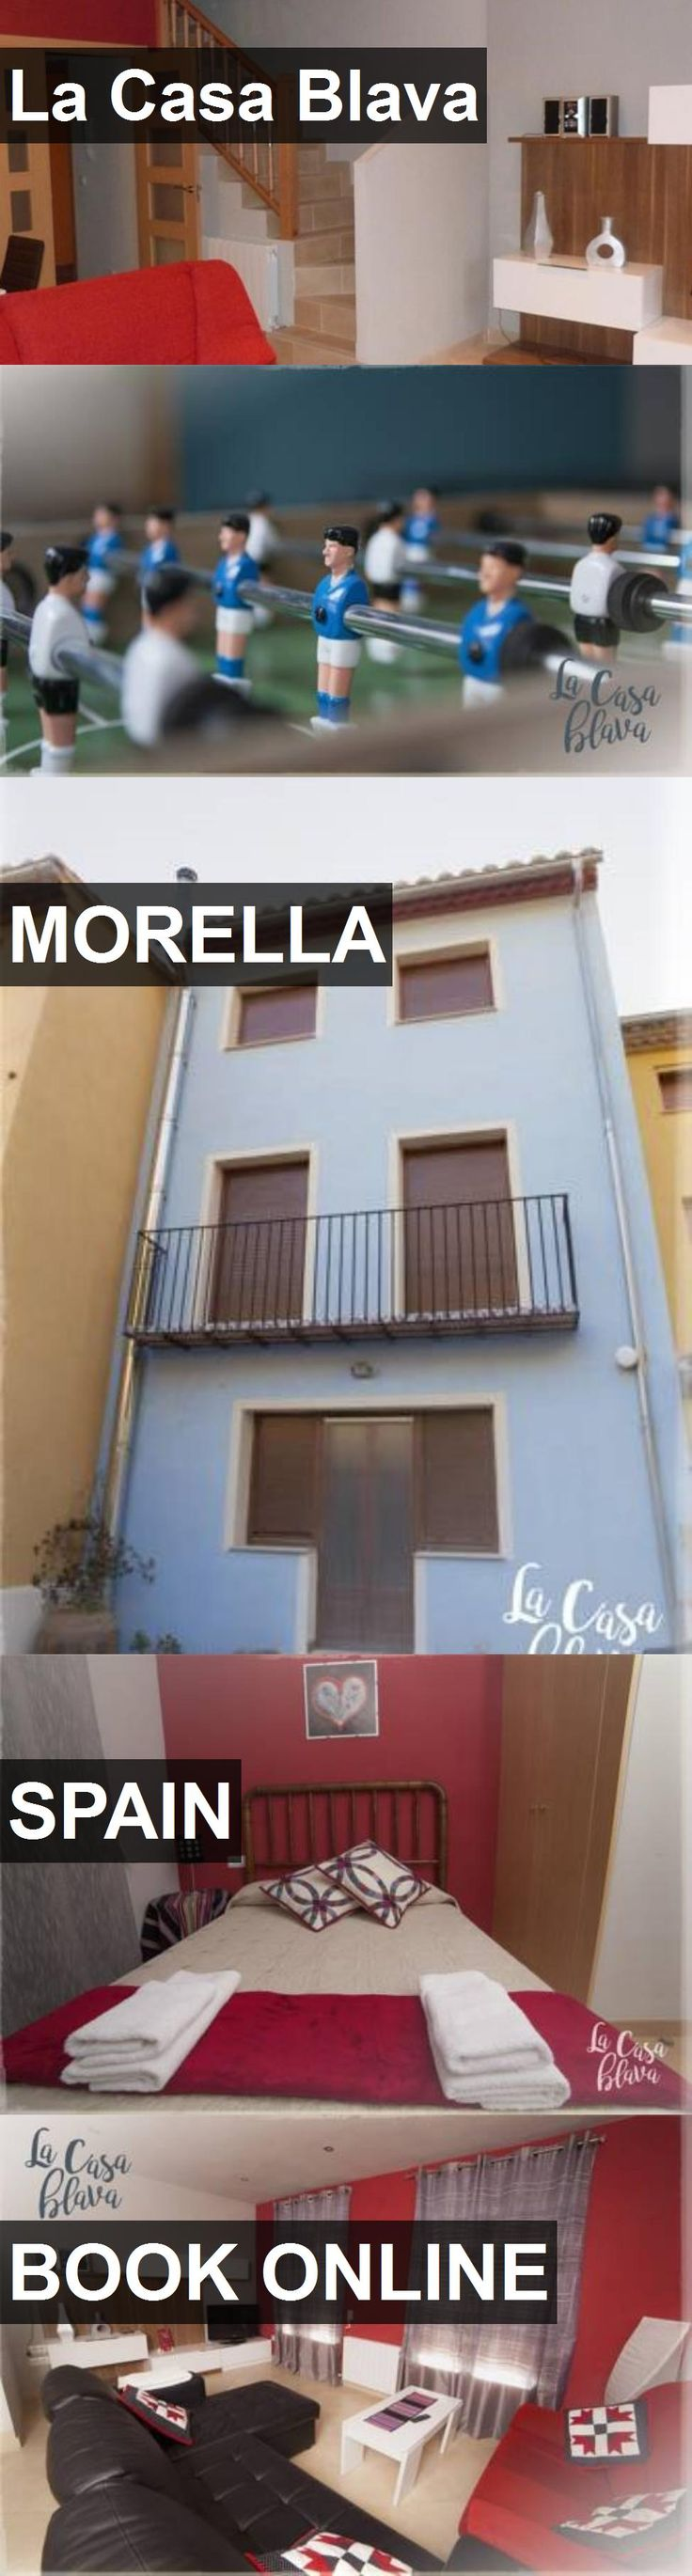 Hotel La Casa Blava in Morella, Spain. For more information, photos, reviews and best prices please follow the link. #Spain #Morella #travel #vacation #hotel